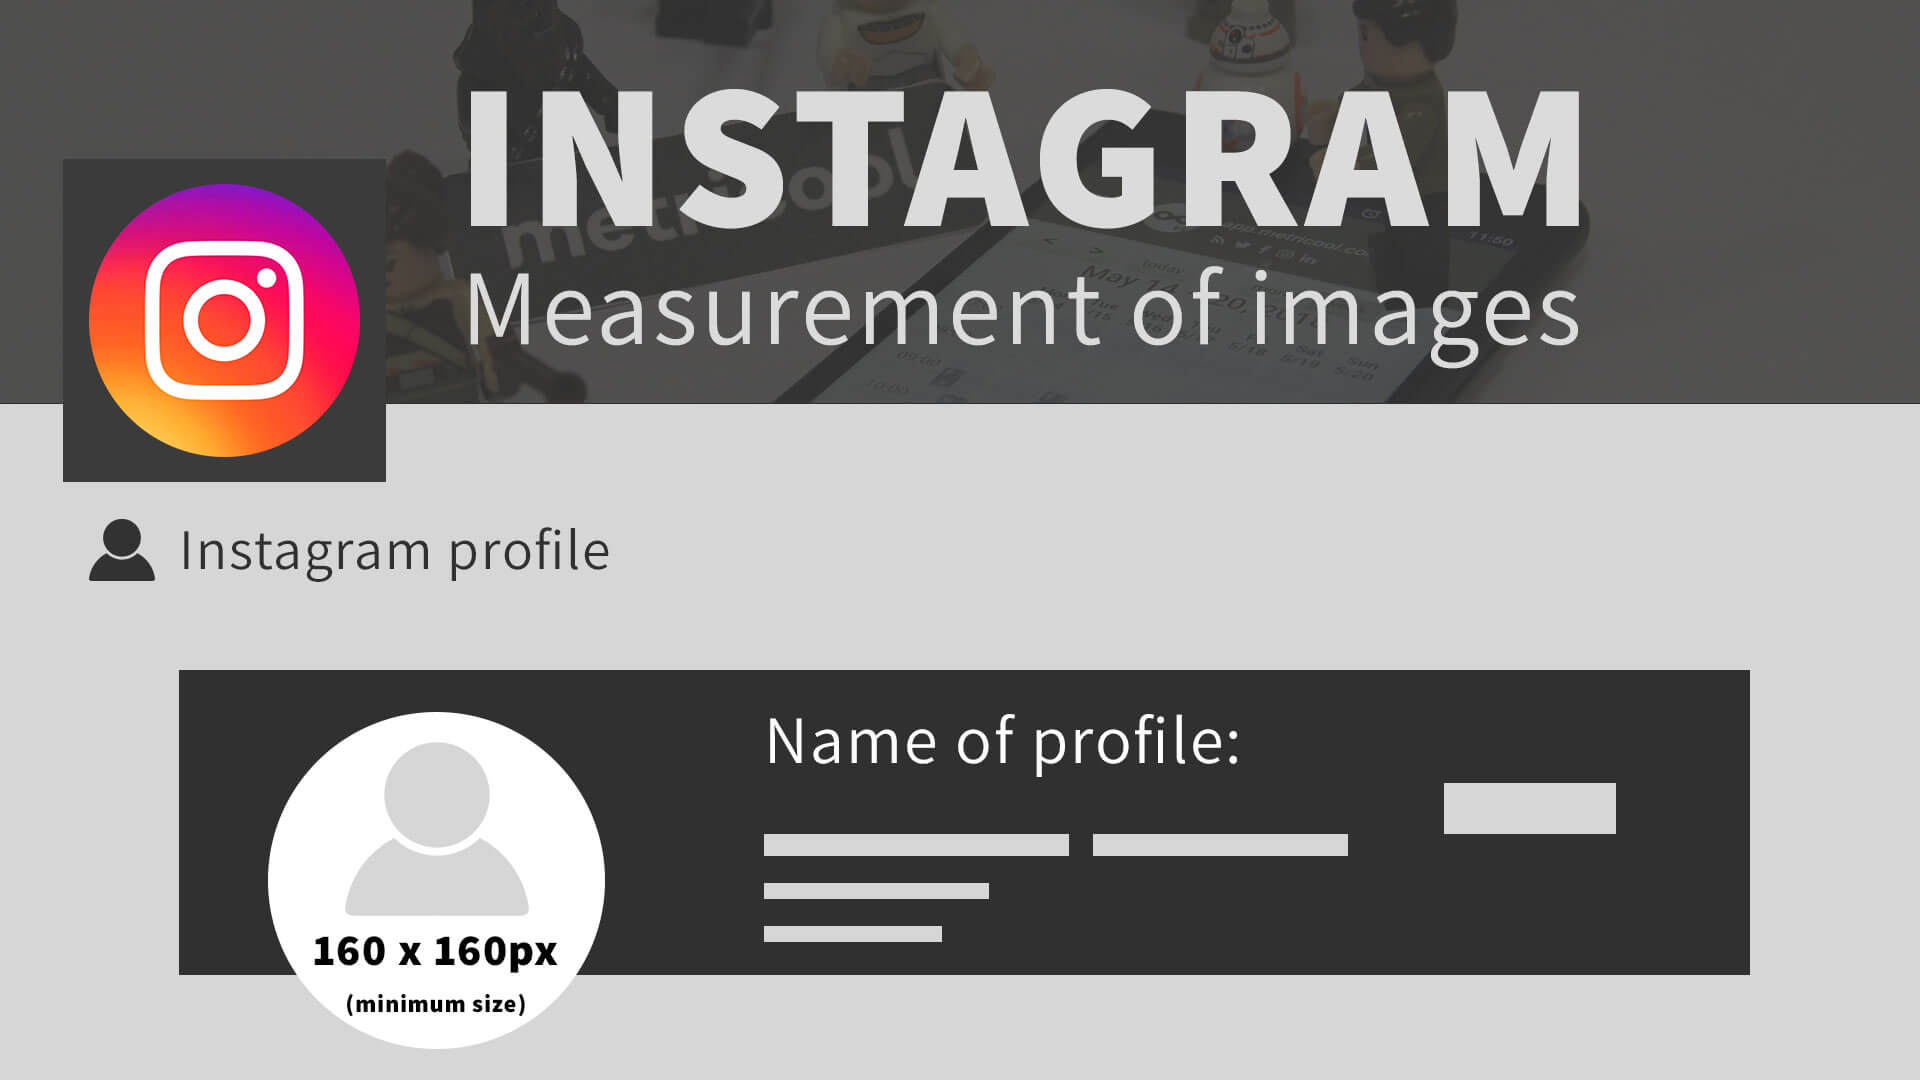 Instagram Image Size The Right Image Size For 2019